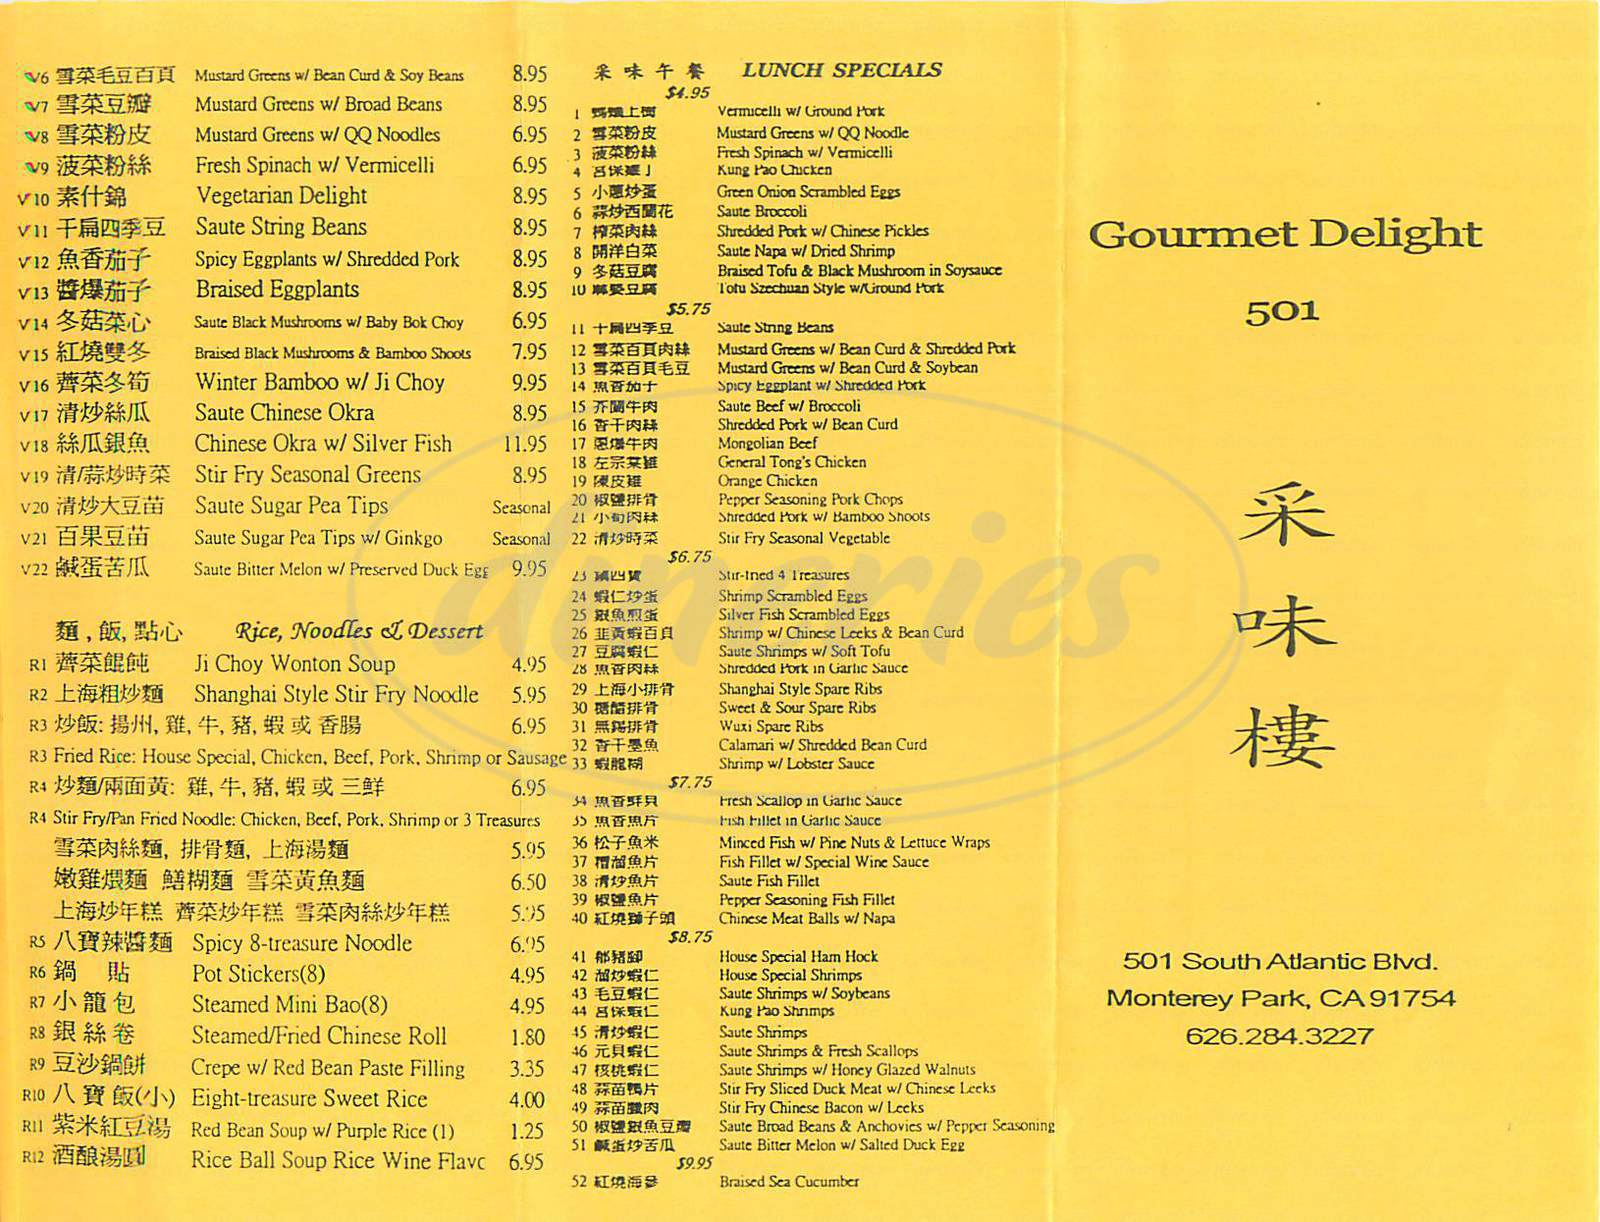 menu for Gourmet Delight